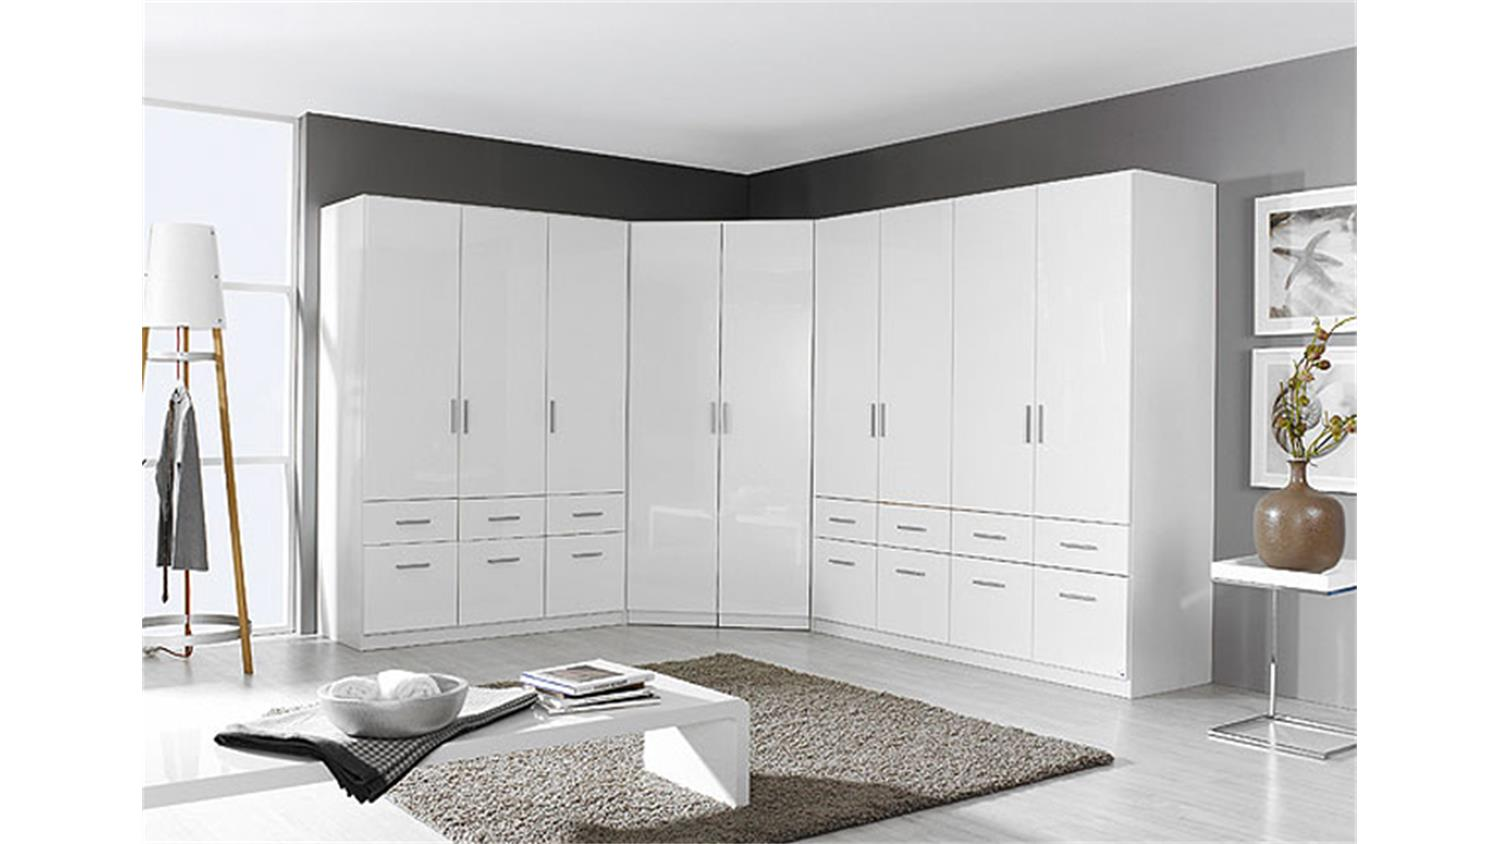 kleiderschrank celle bestseller shop f r m bel und einrichtungen. Black Bedroom Furniture Sets. Home Design Ideas